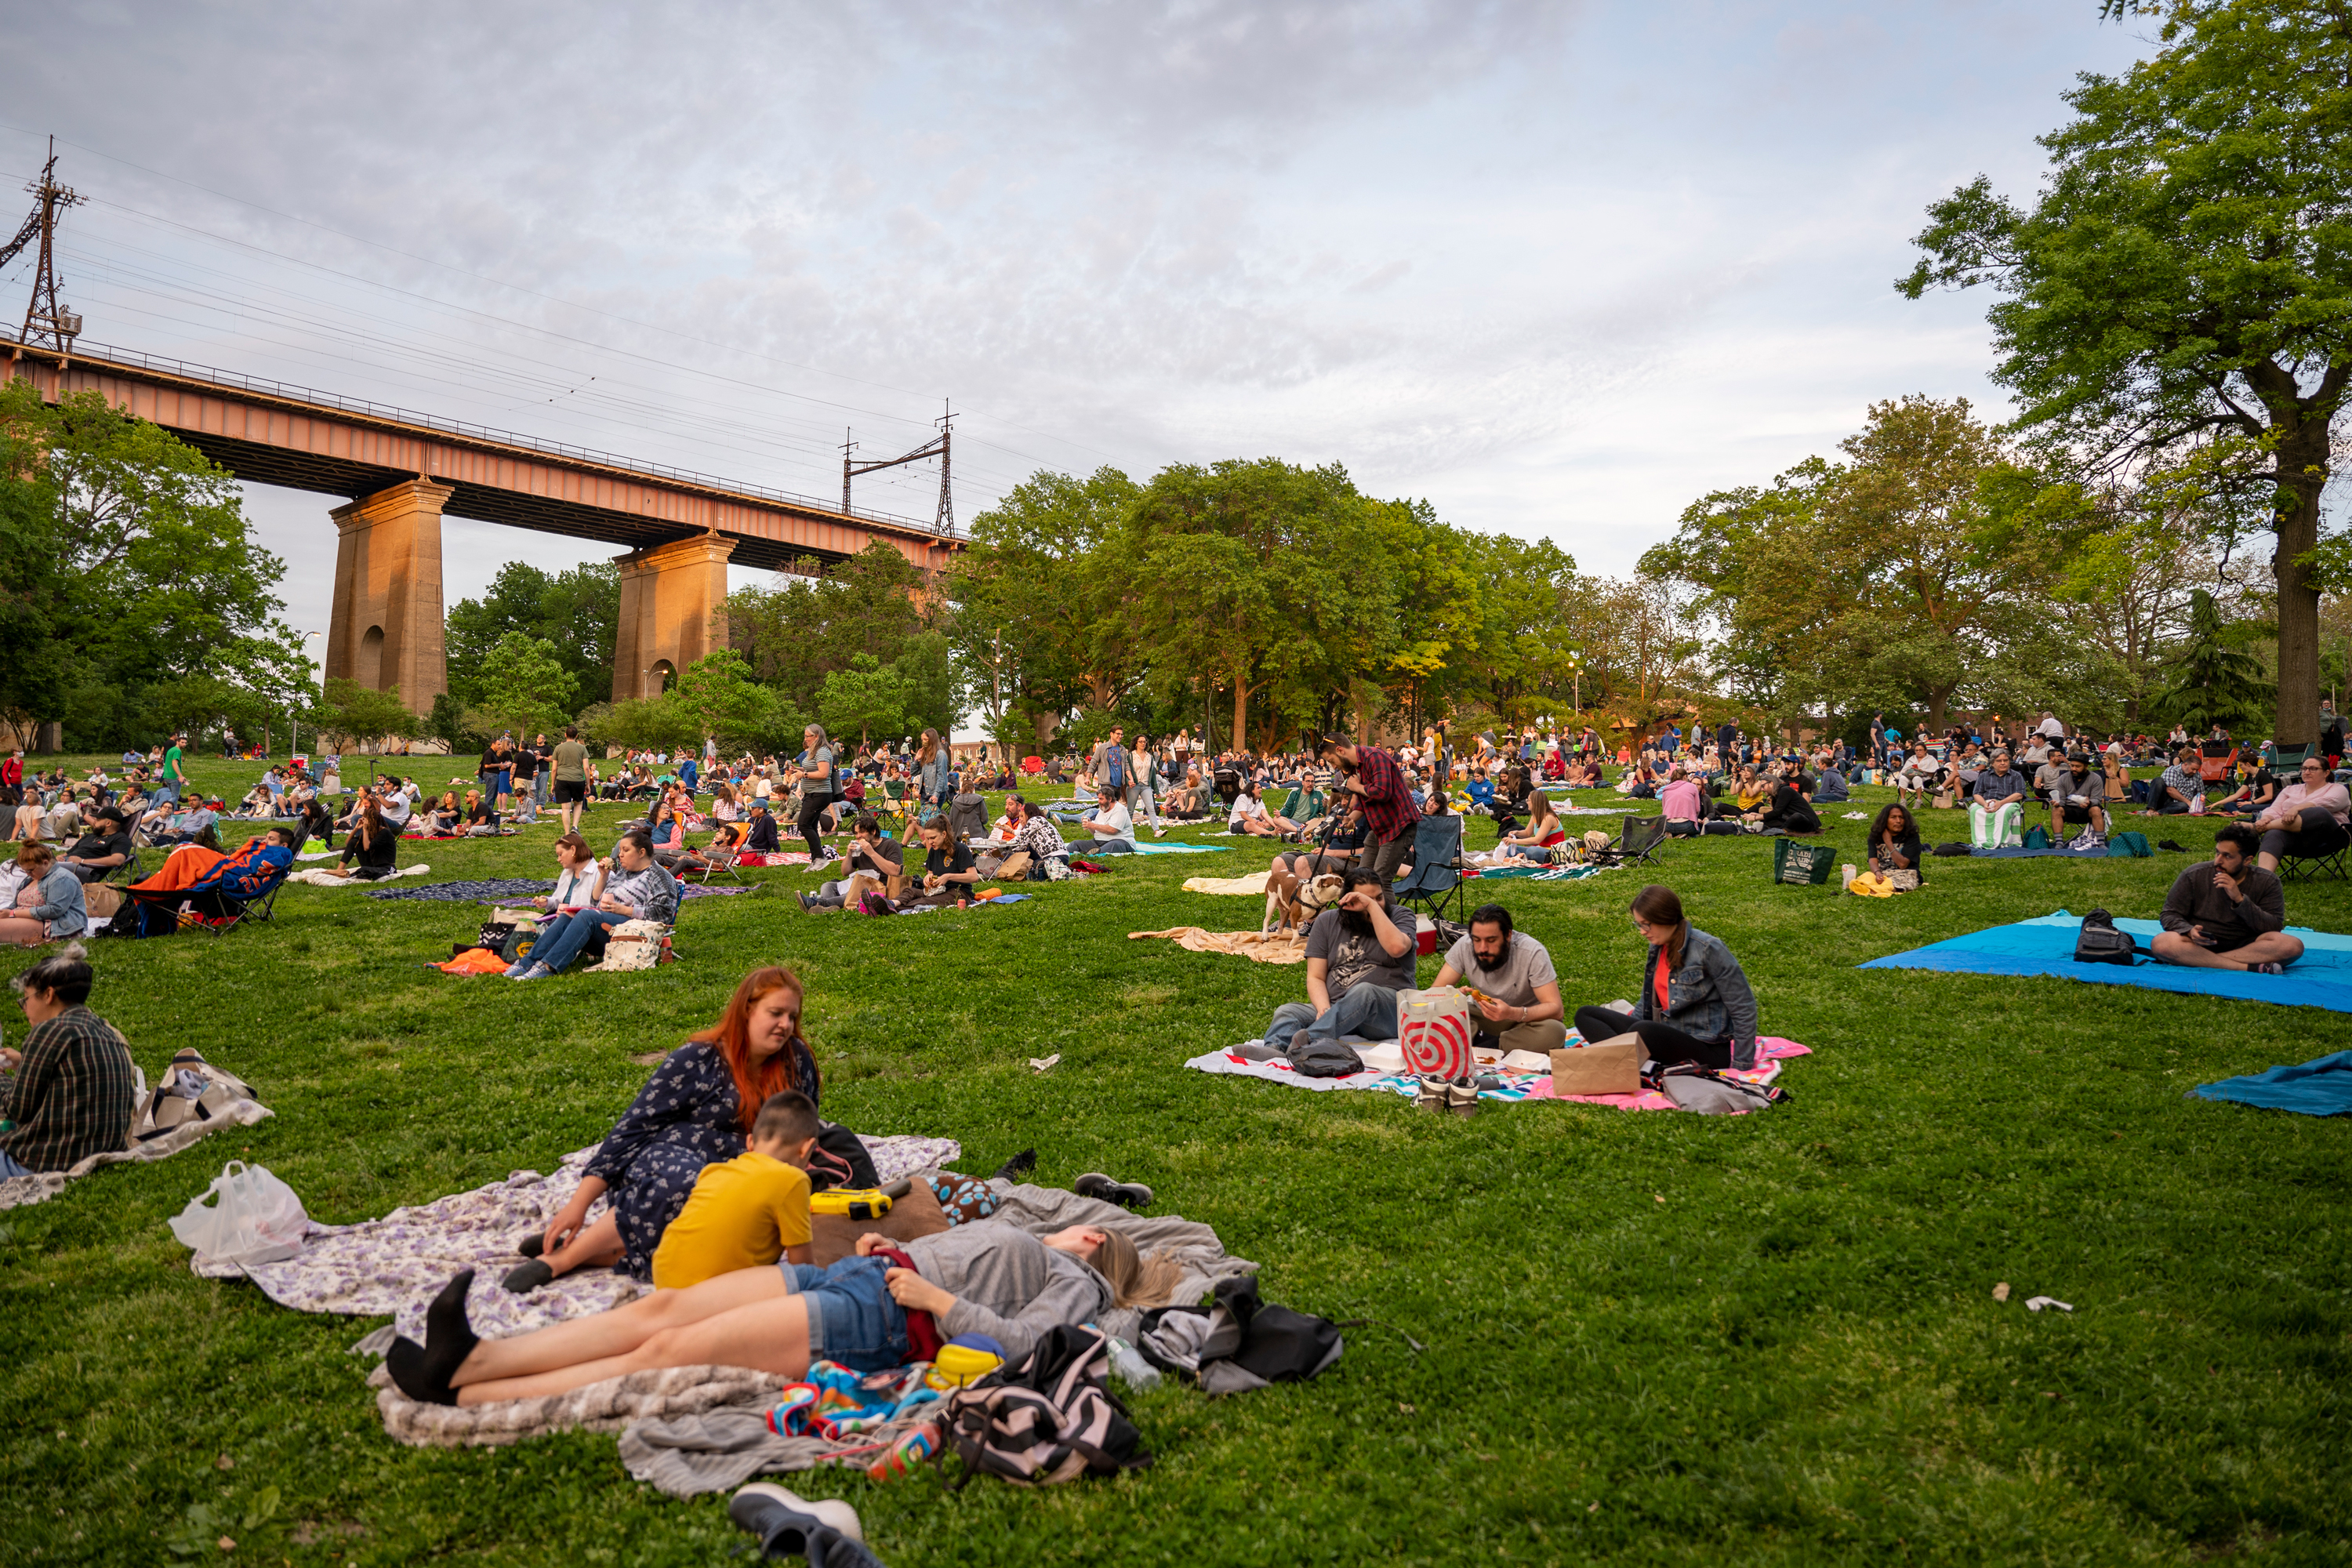 People gather in Astoria Park ahead of an outdoor movie, May 21, 2021.